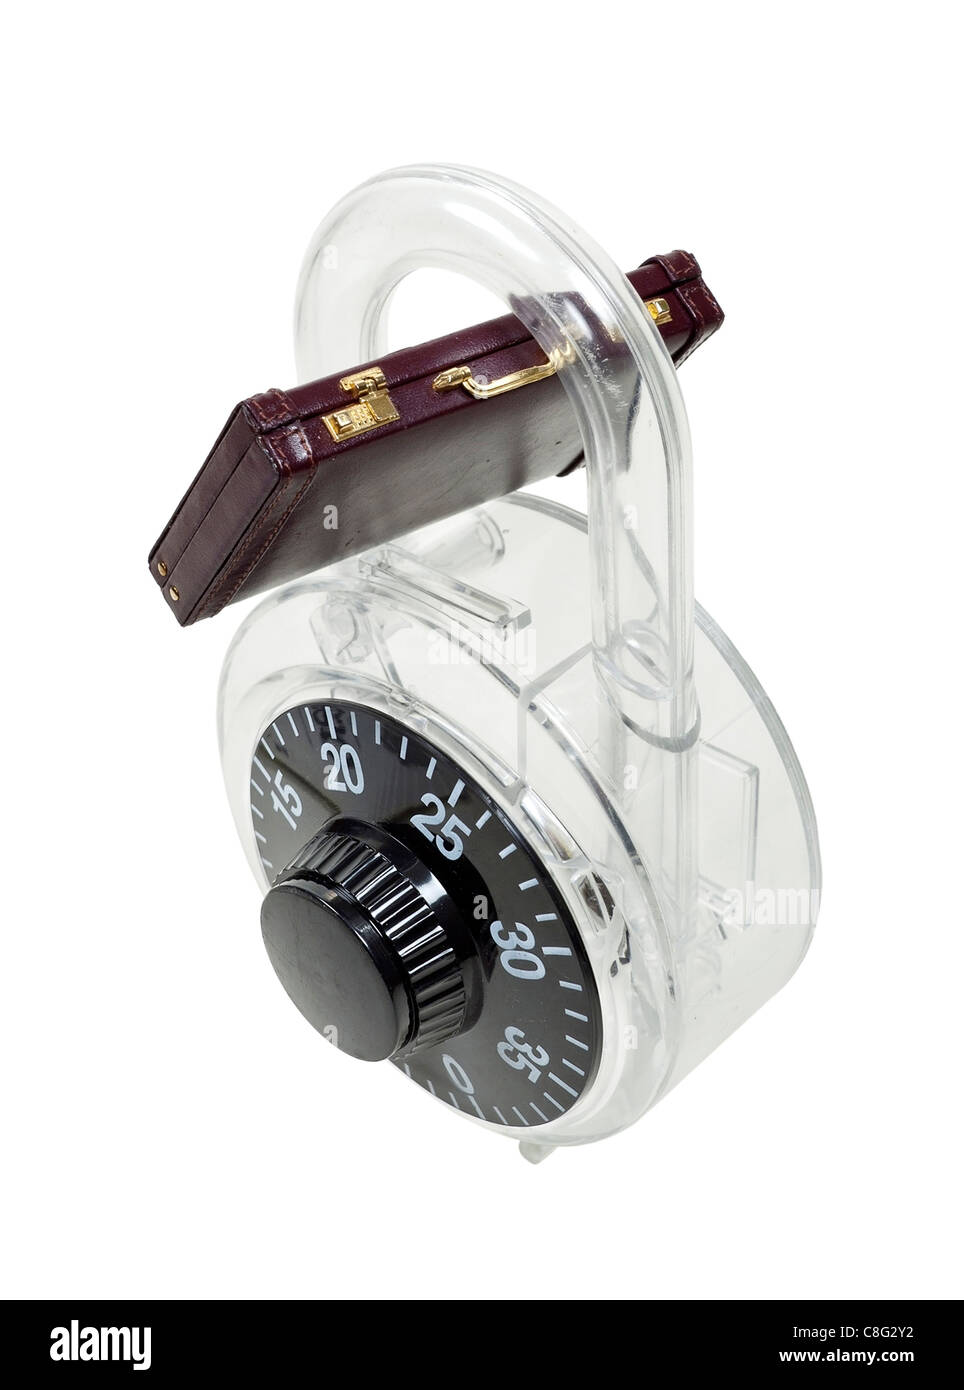 Business security shown by a large padlock used to lock items around a briefcase - path included - Stock Image